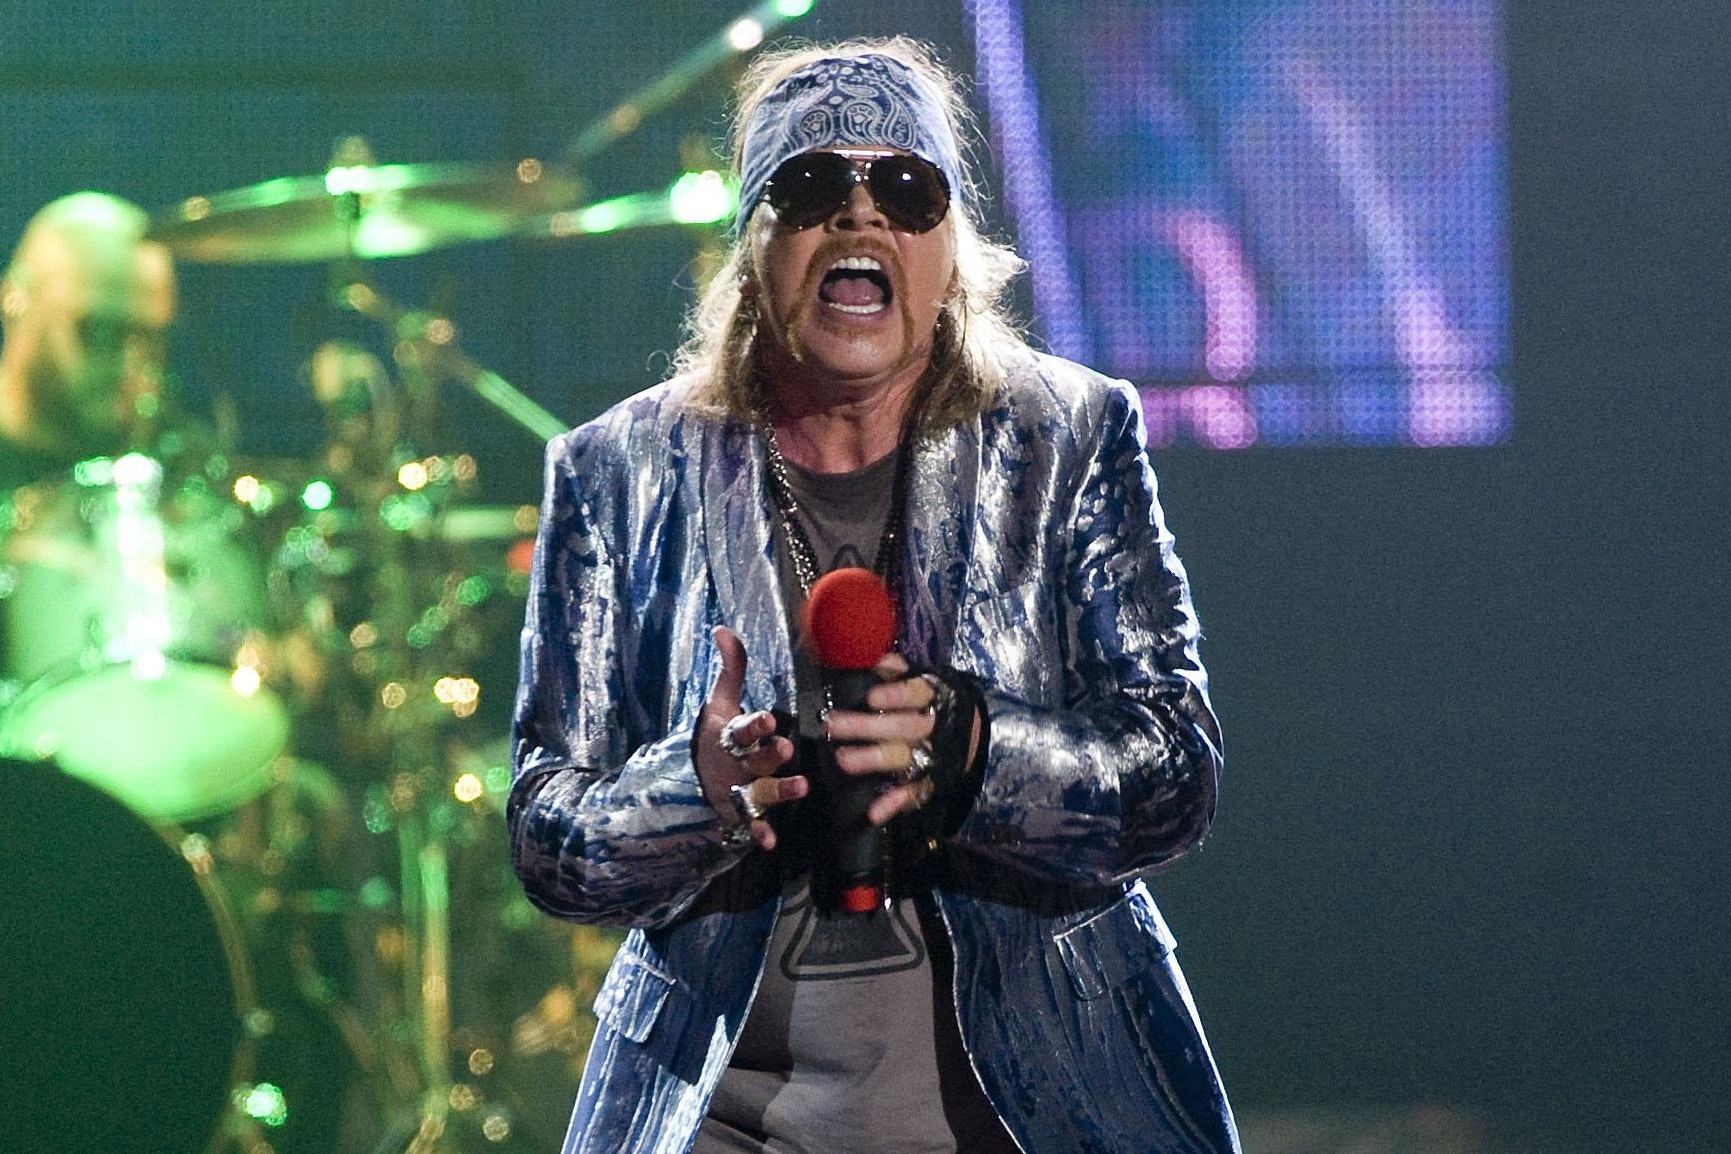 Guns N' Roses to rock out as Download festival headliner (Ian West/PA)